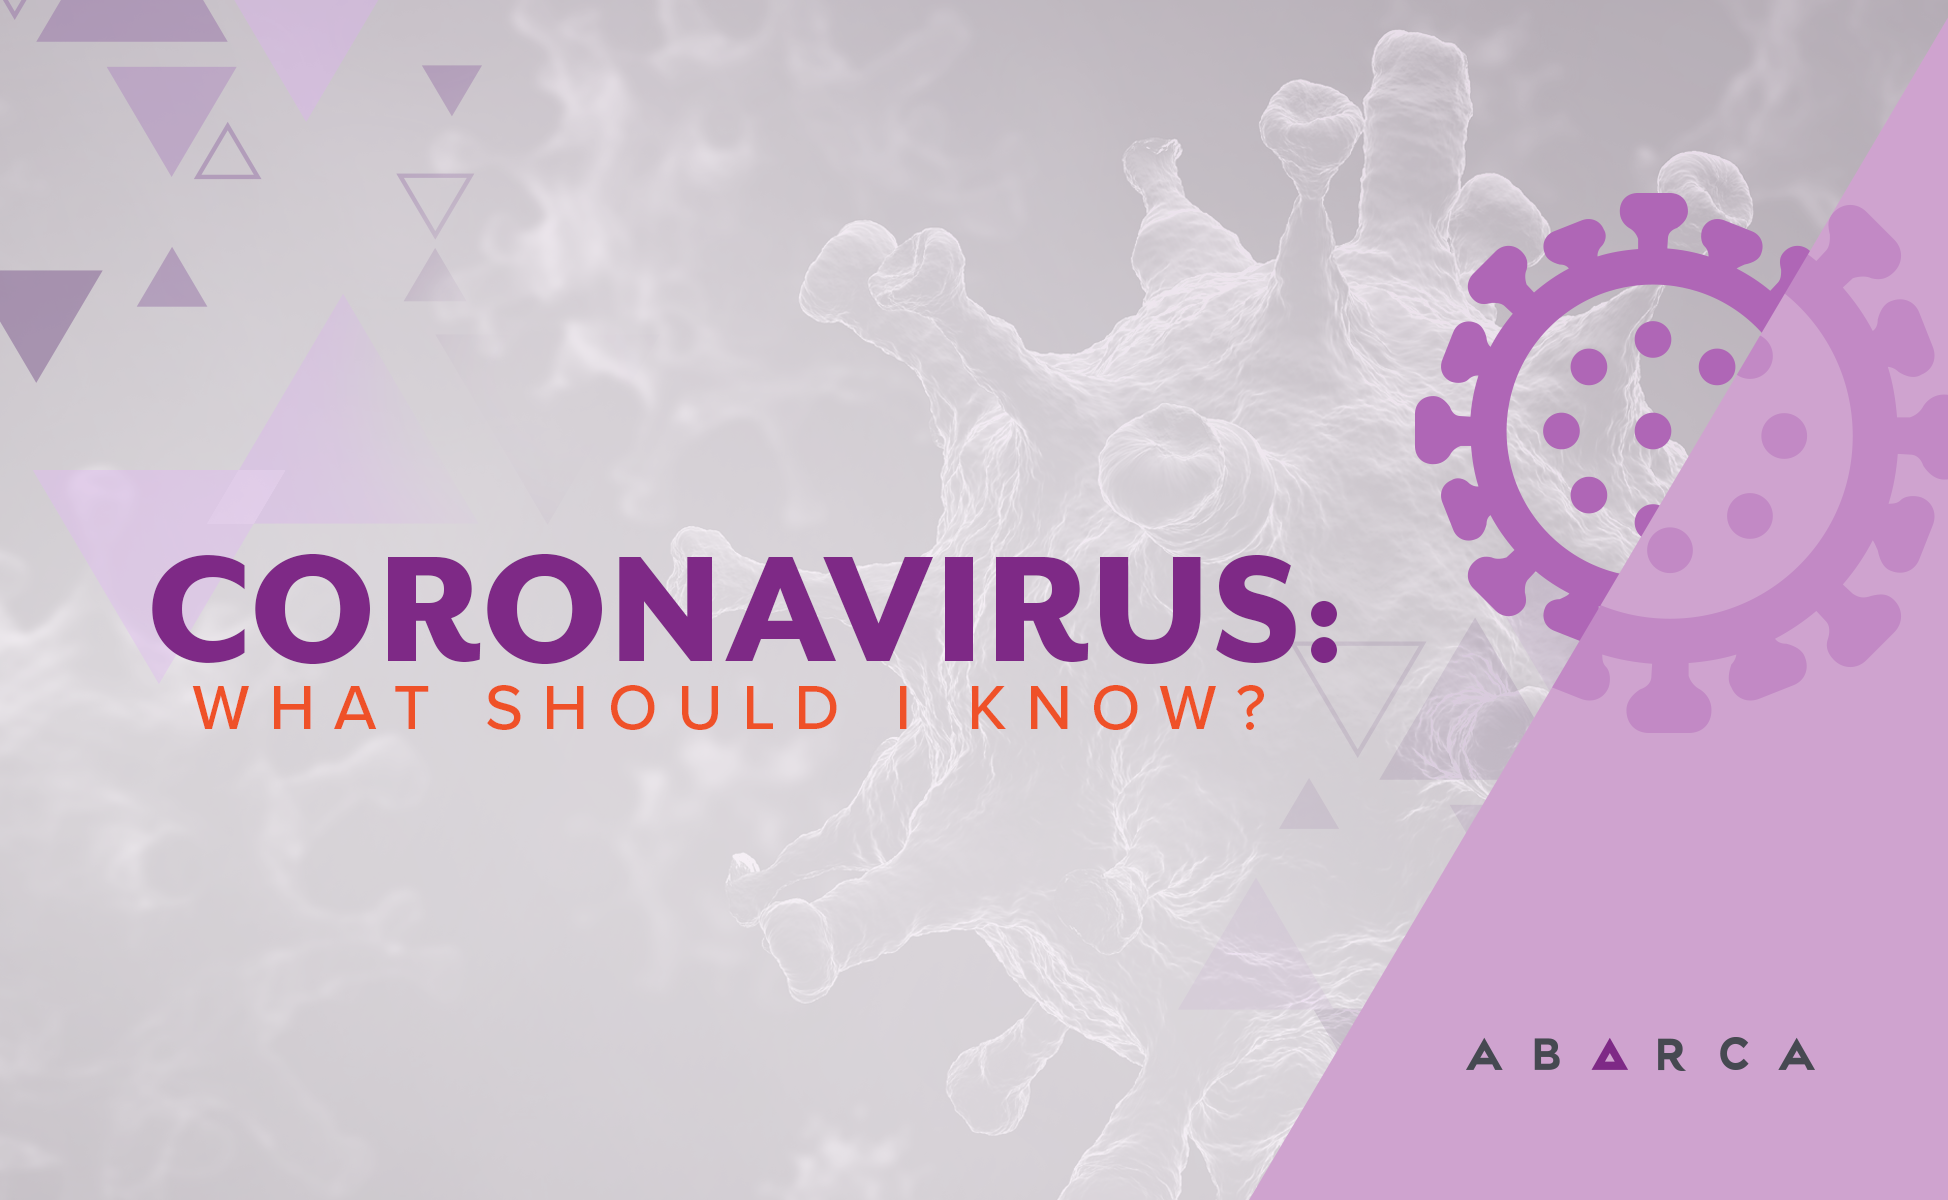 Abarca Health: What should I know about the Coronavirus?